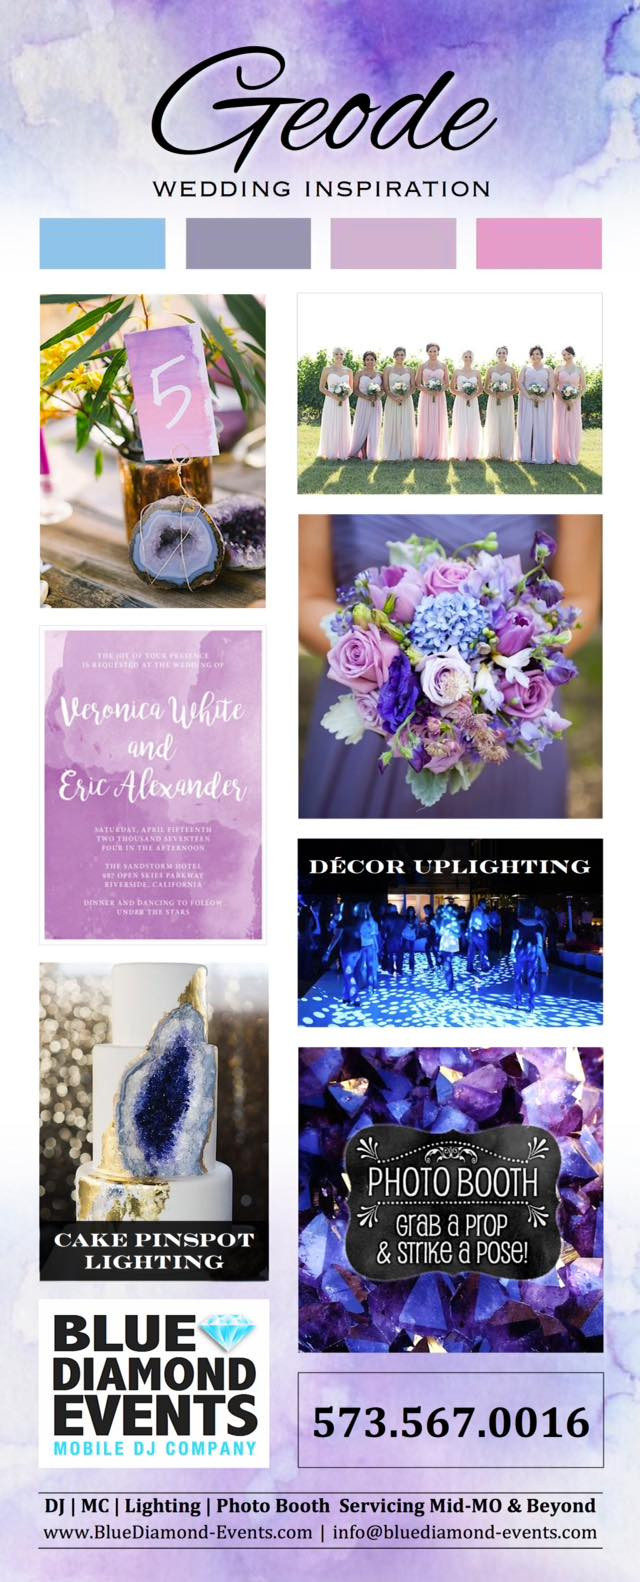 Geode Wedding Inspiration, Blue Diamond Events, event planning, coordinating, dj, photo booth, lighting, mc, mid-missouri